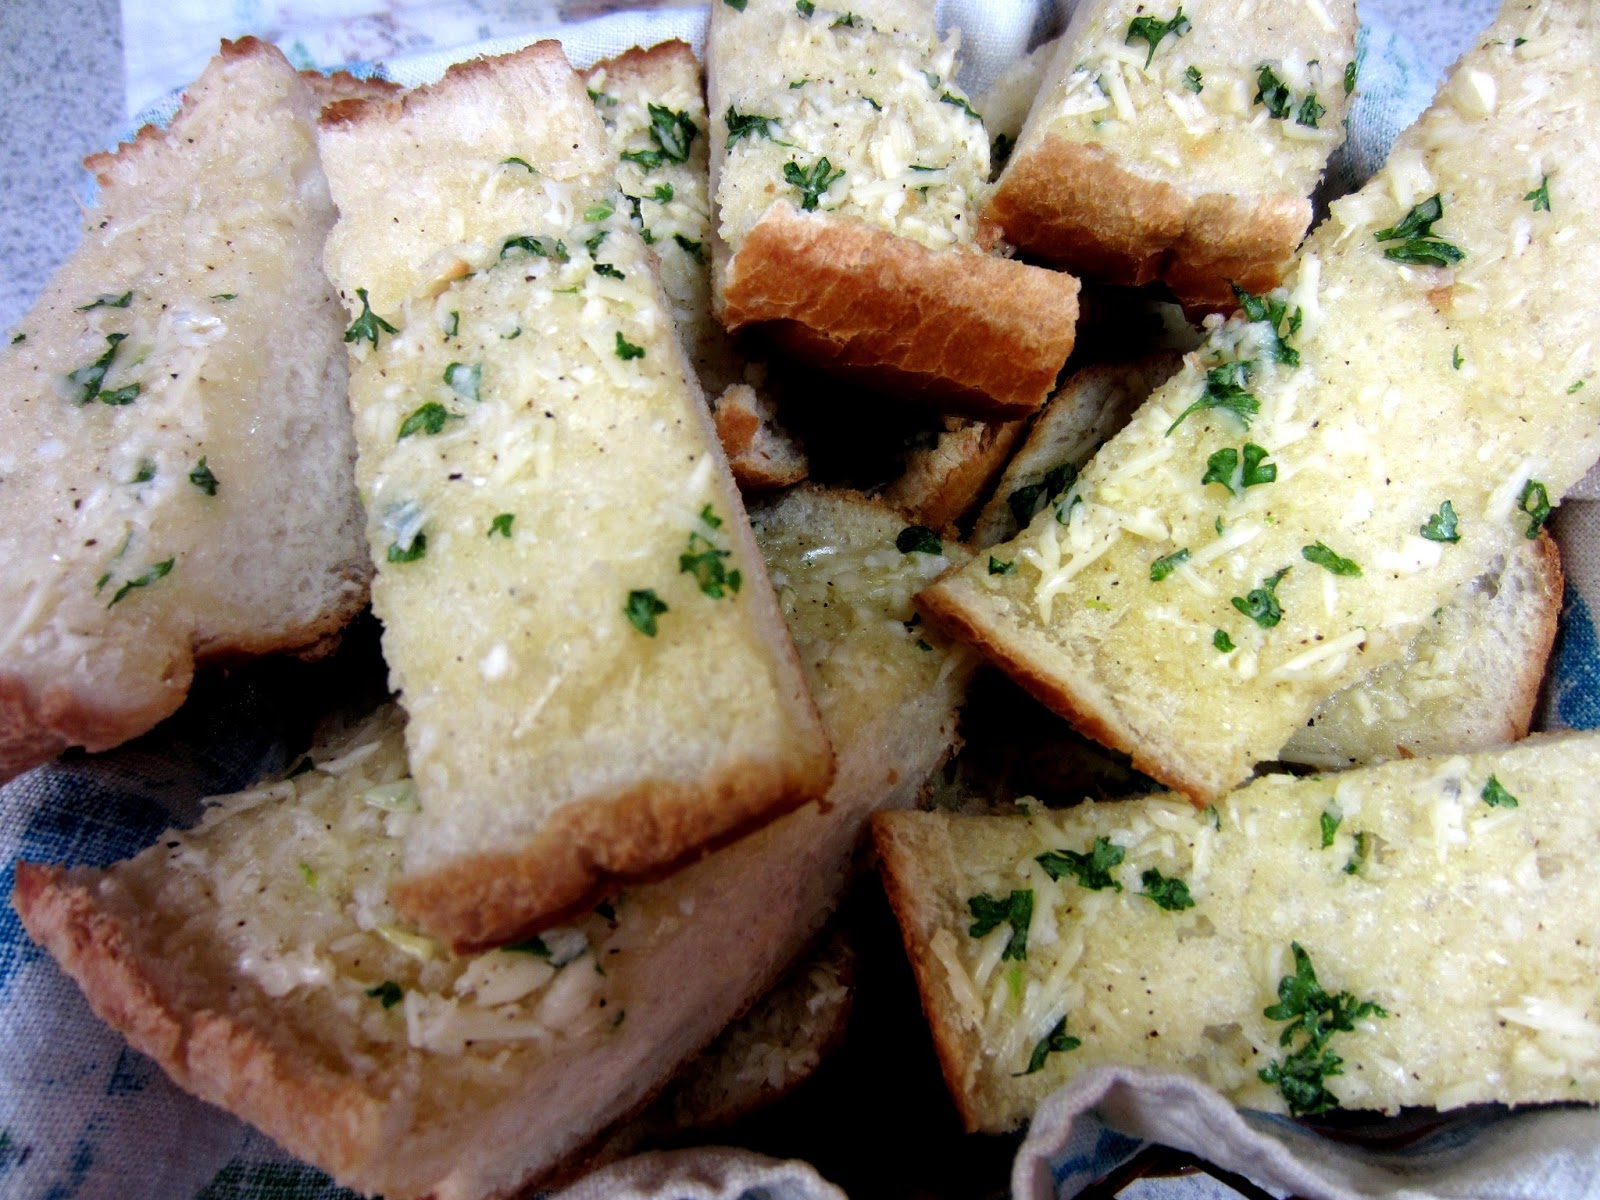 Homemade Garlic Bread Spread Love To Be In The Kitchen